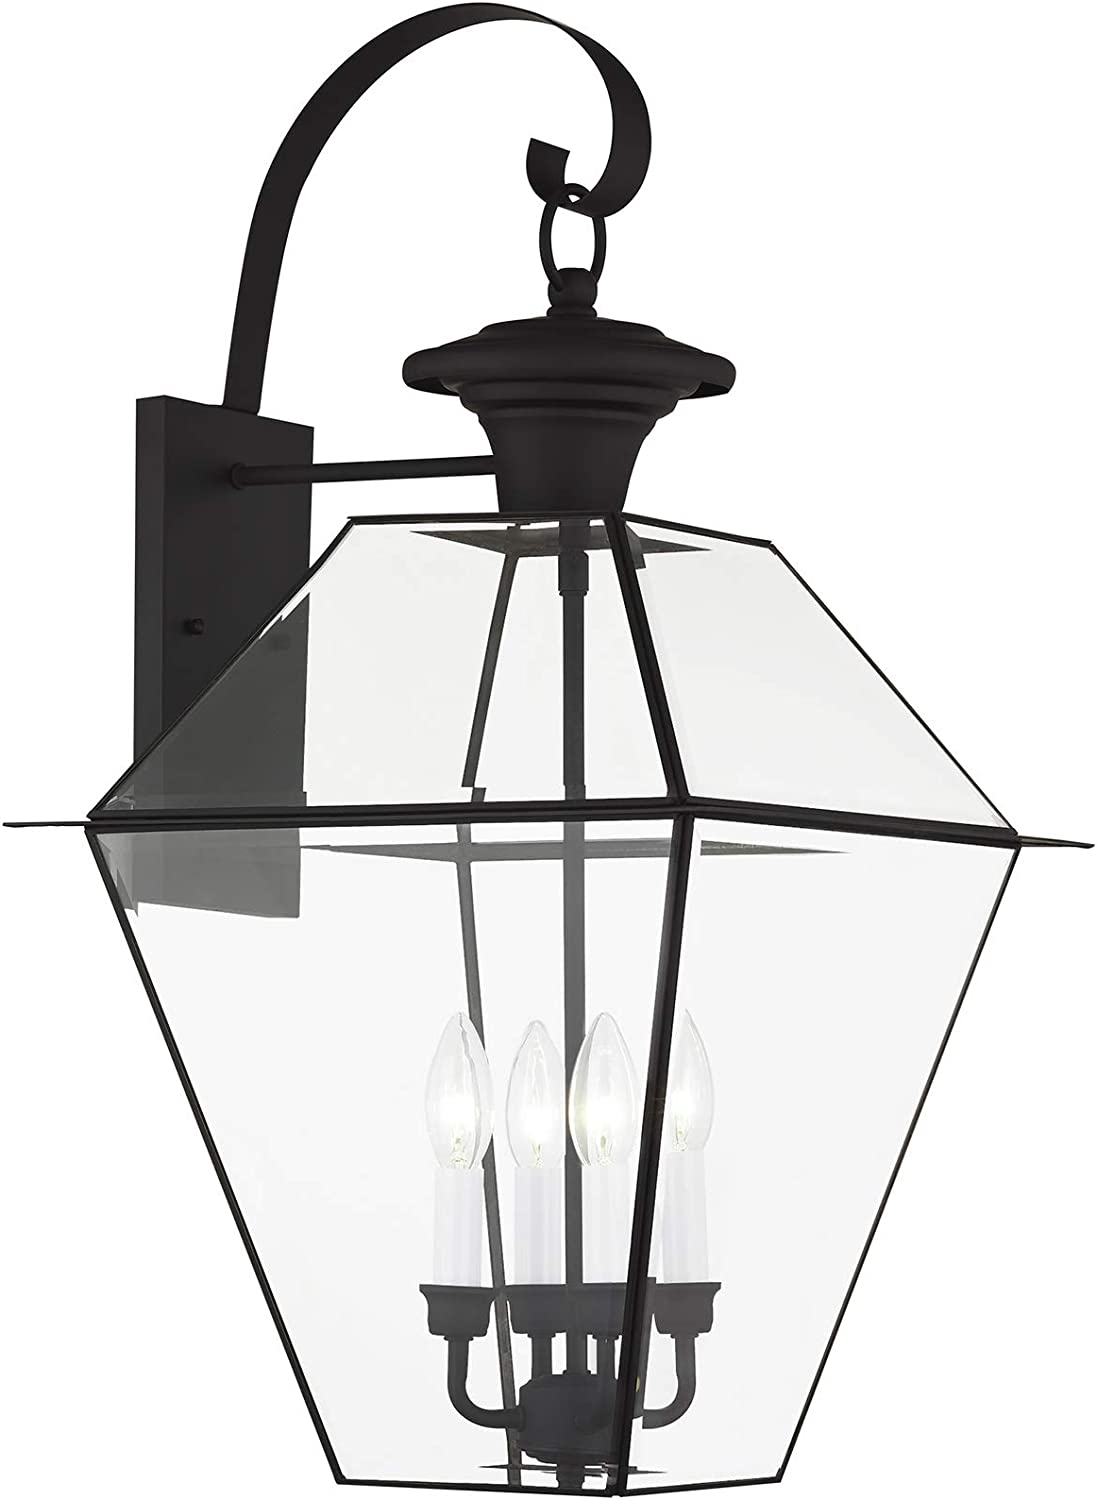 Livex Lighting Limited Special Price 2386-04 Detroit Mall Westover 4-Light Wall Bl Outdoor Lantern